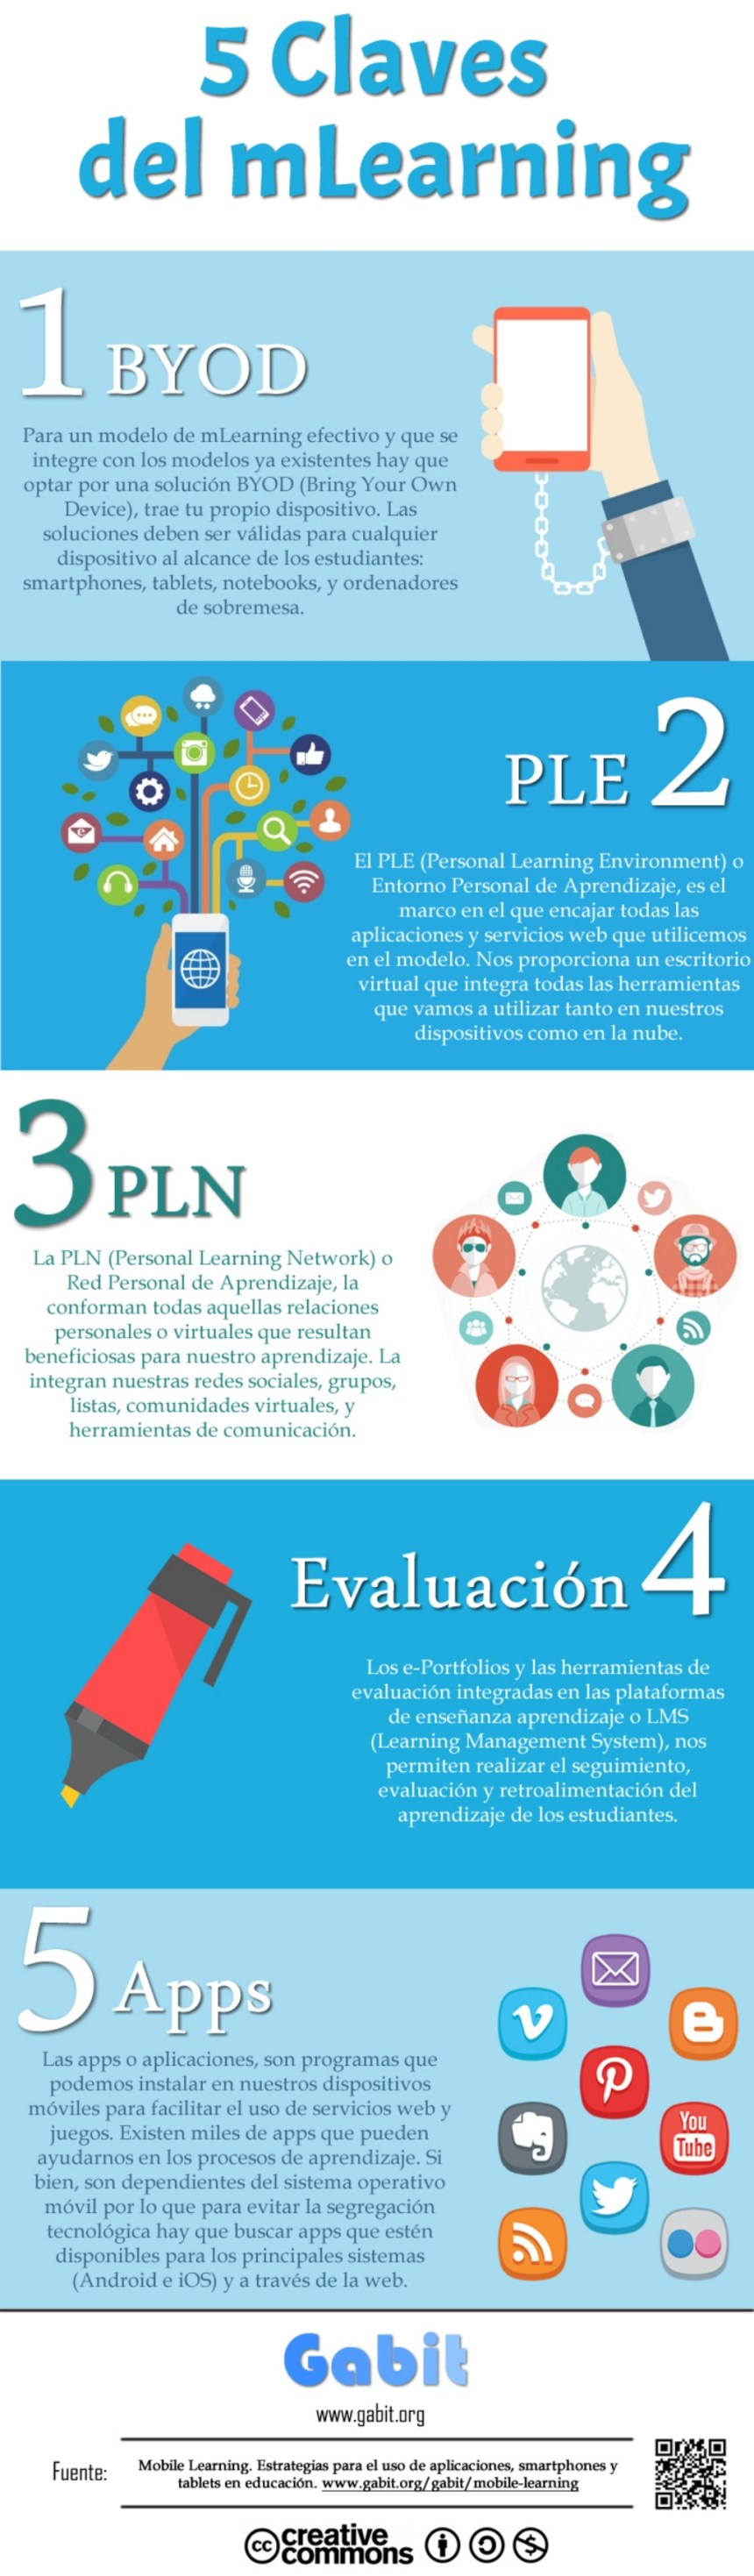 5 claves del mLearning